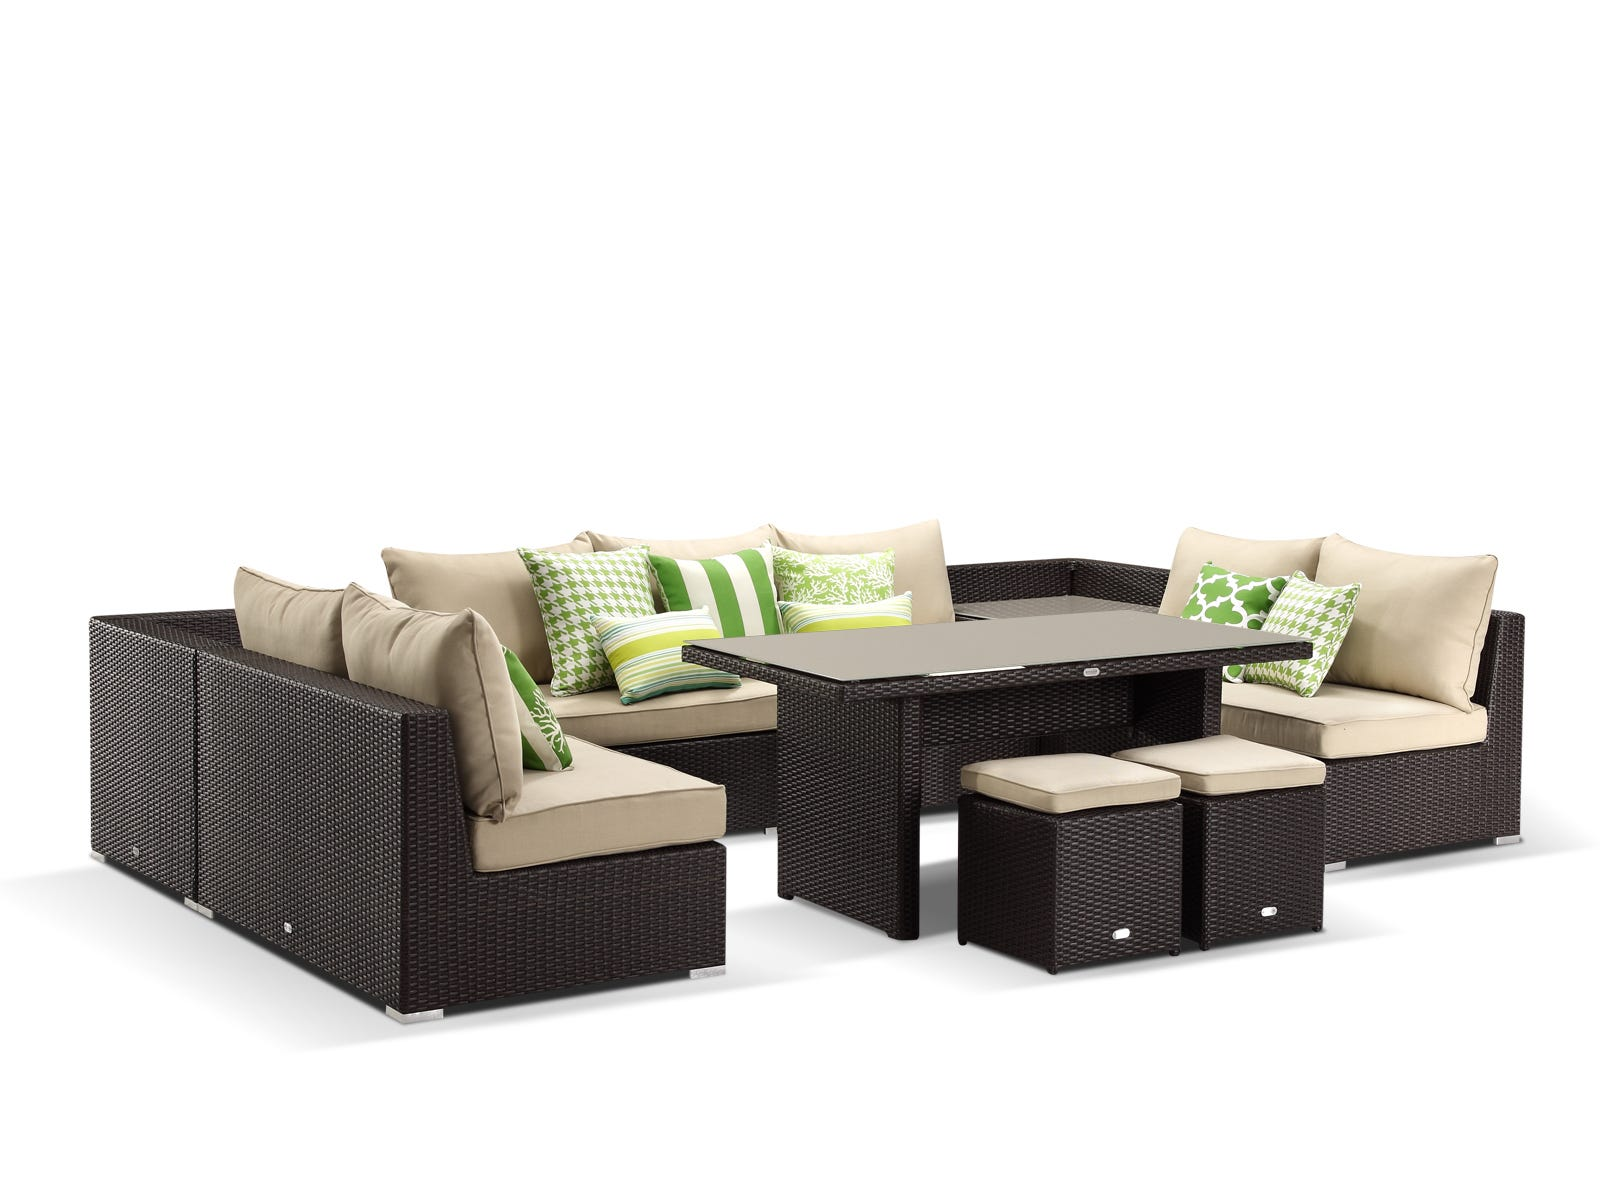 Outdoor furniture evolution dining out in comfort for Outdoor lounge furniture